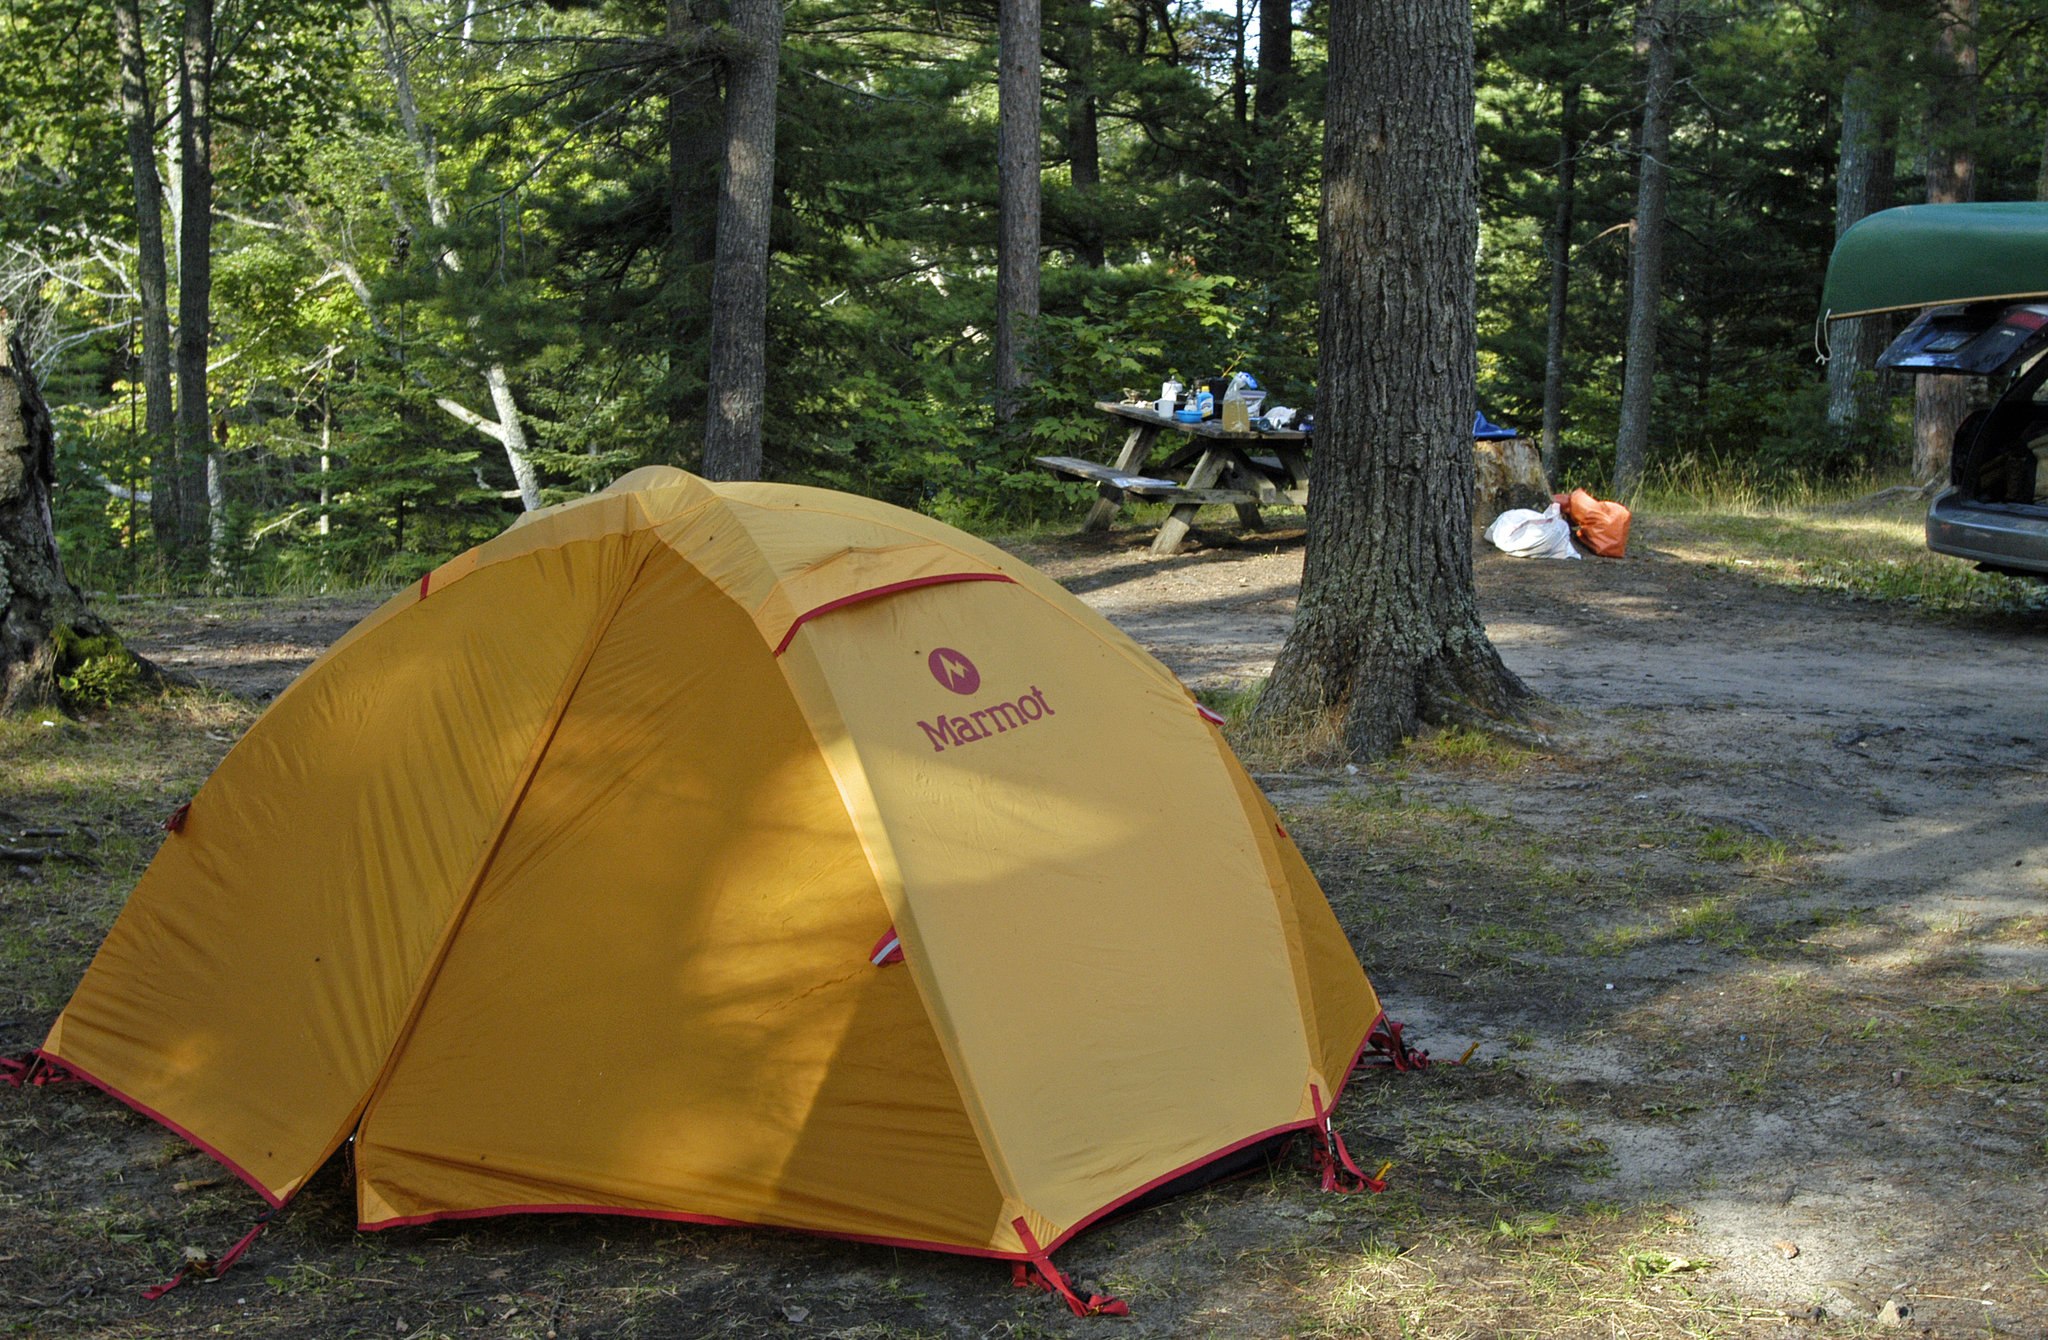 Mi Dnr Reservations for Your Best Recreation Strategic Planning: Mi Dnr Reservations | Michigan Parks | Dnr Michigan Camping